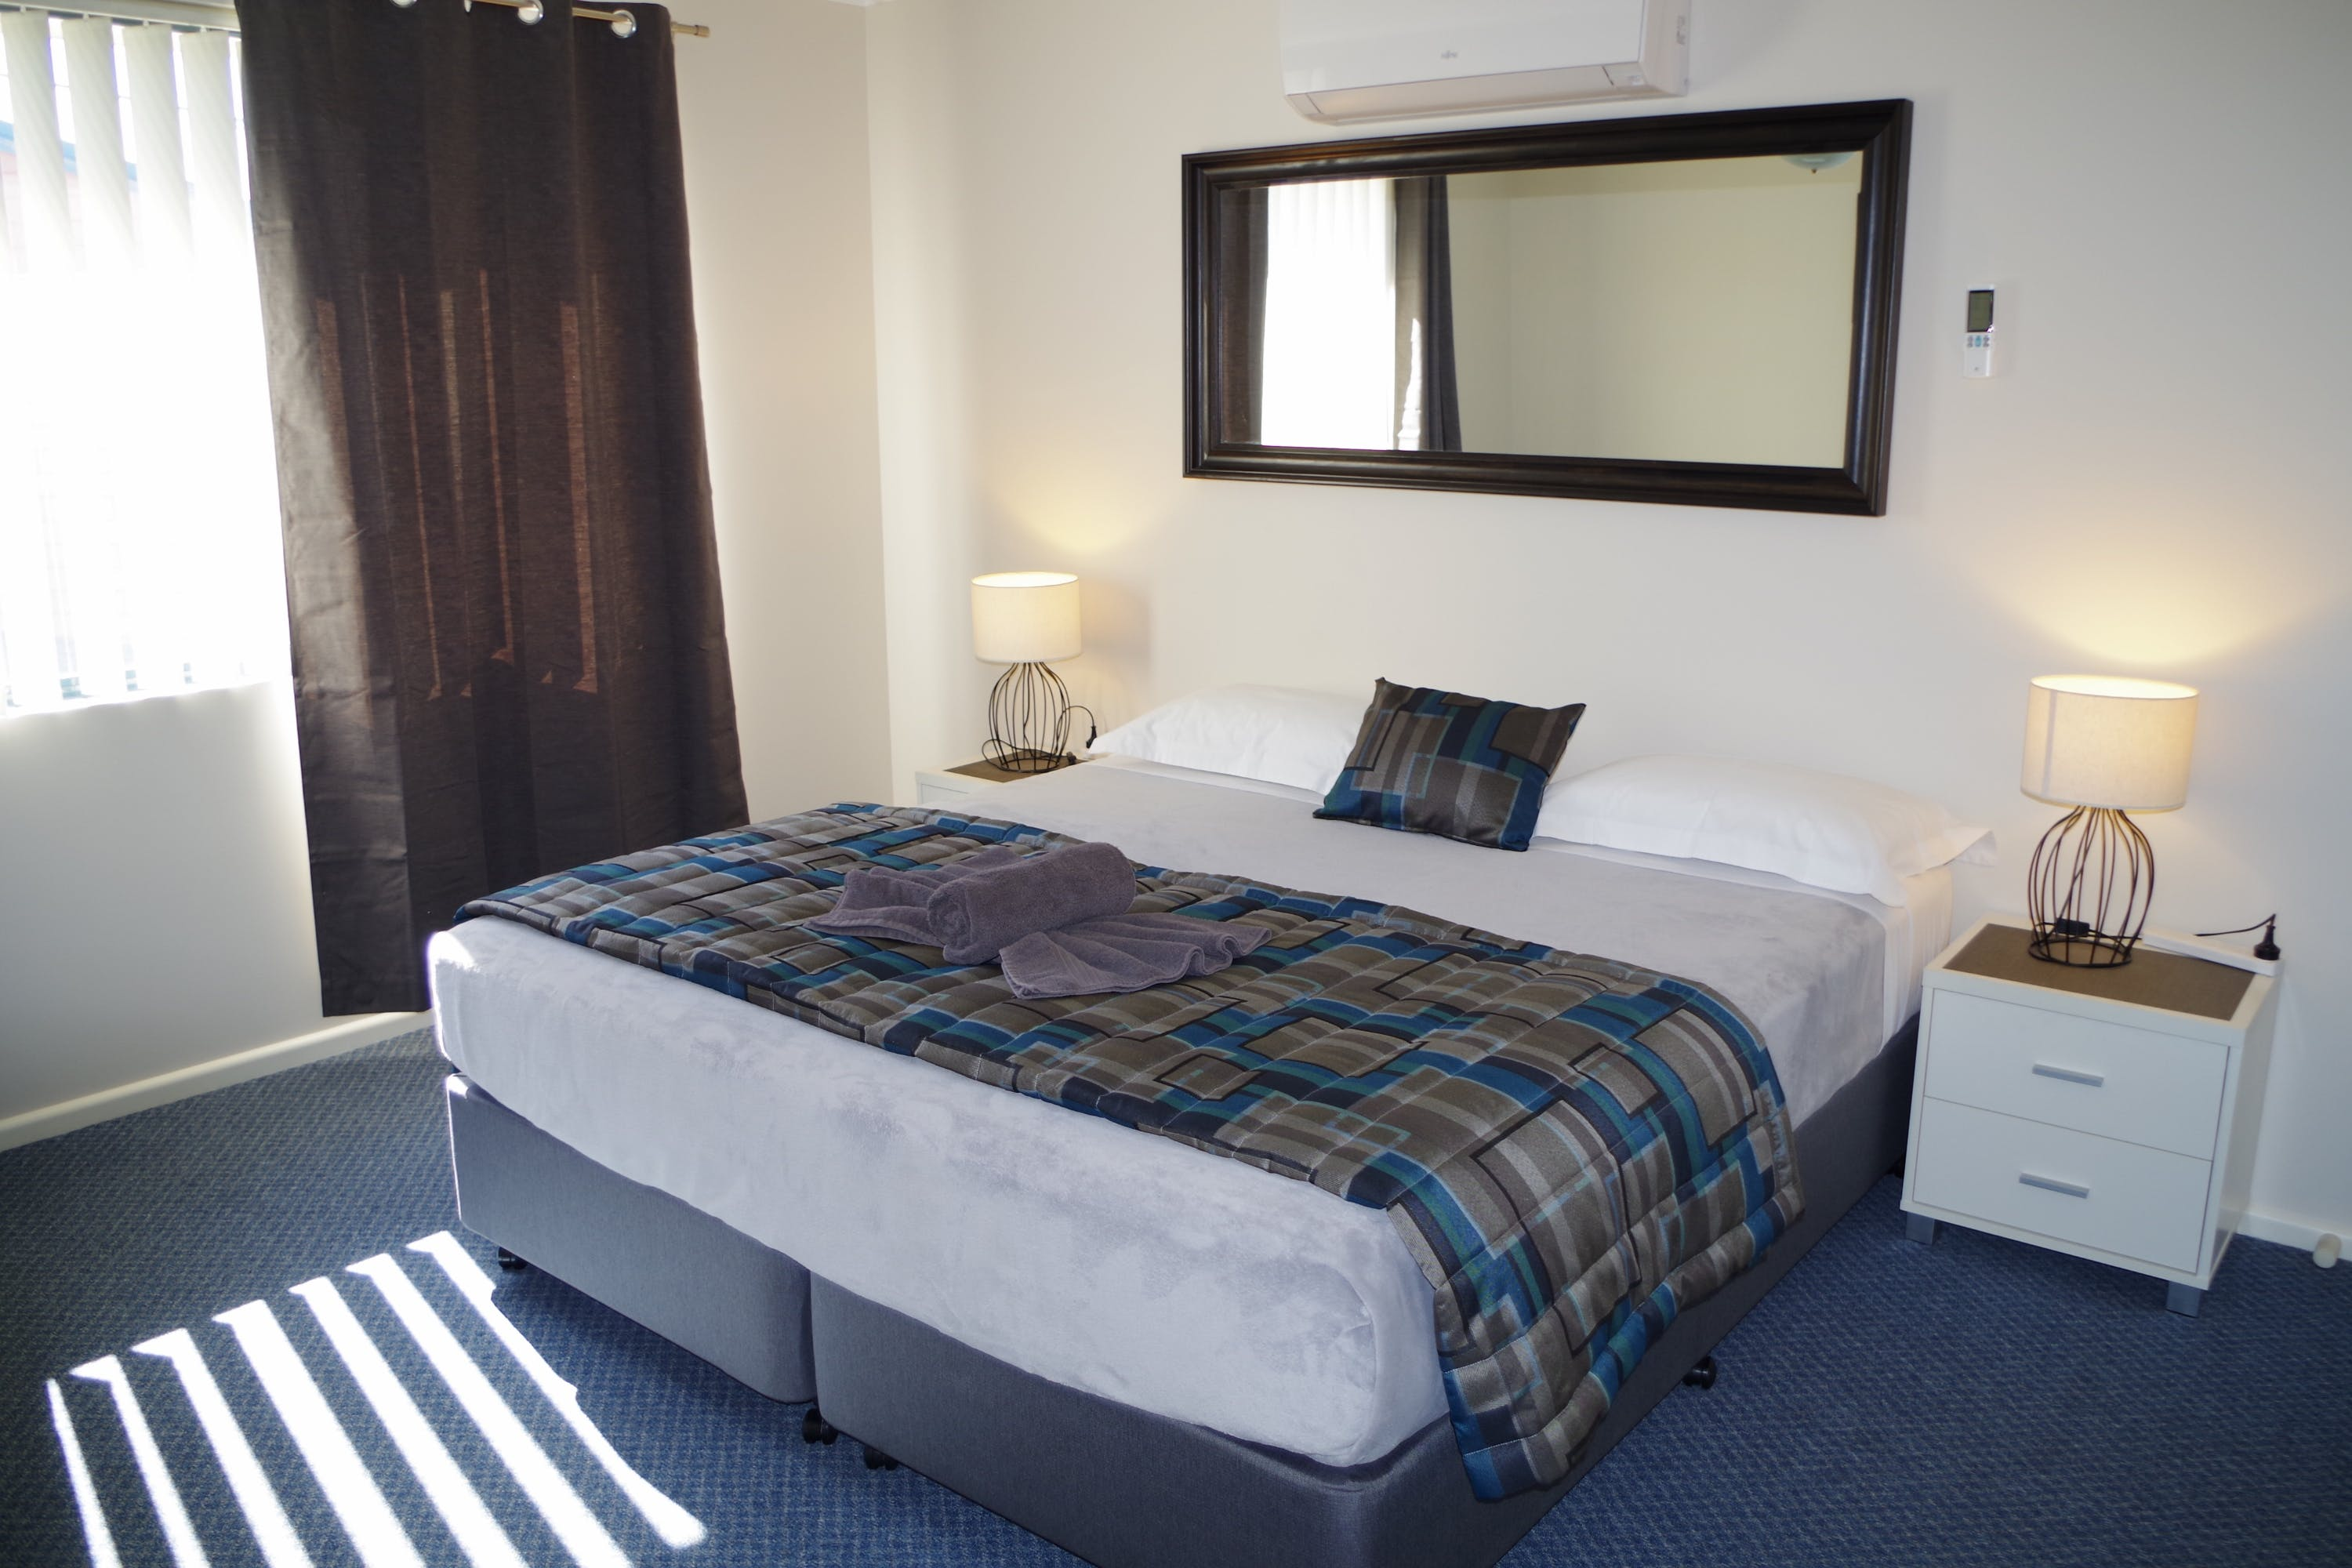 Looking for kalbarri hotel accommodation ? Look no further than Kalbarri Blue Ocean Villas.